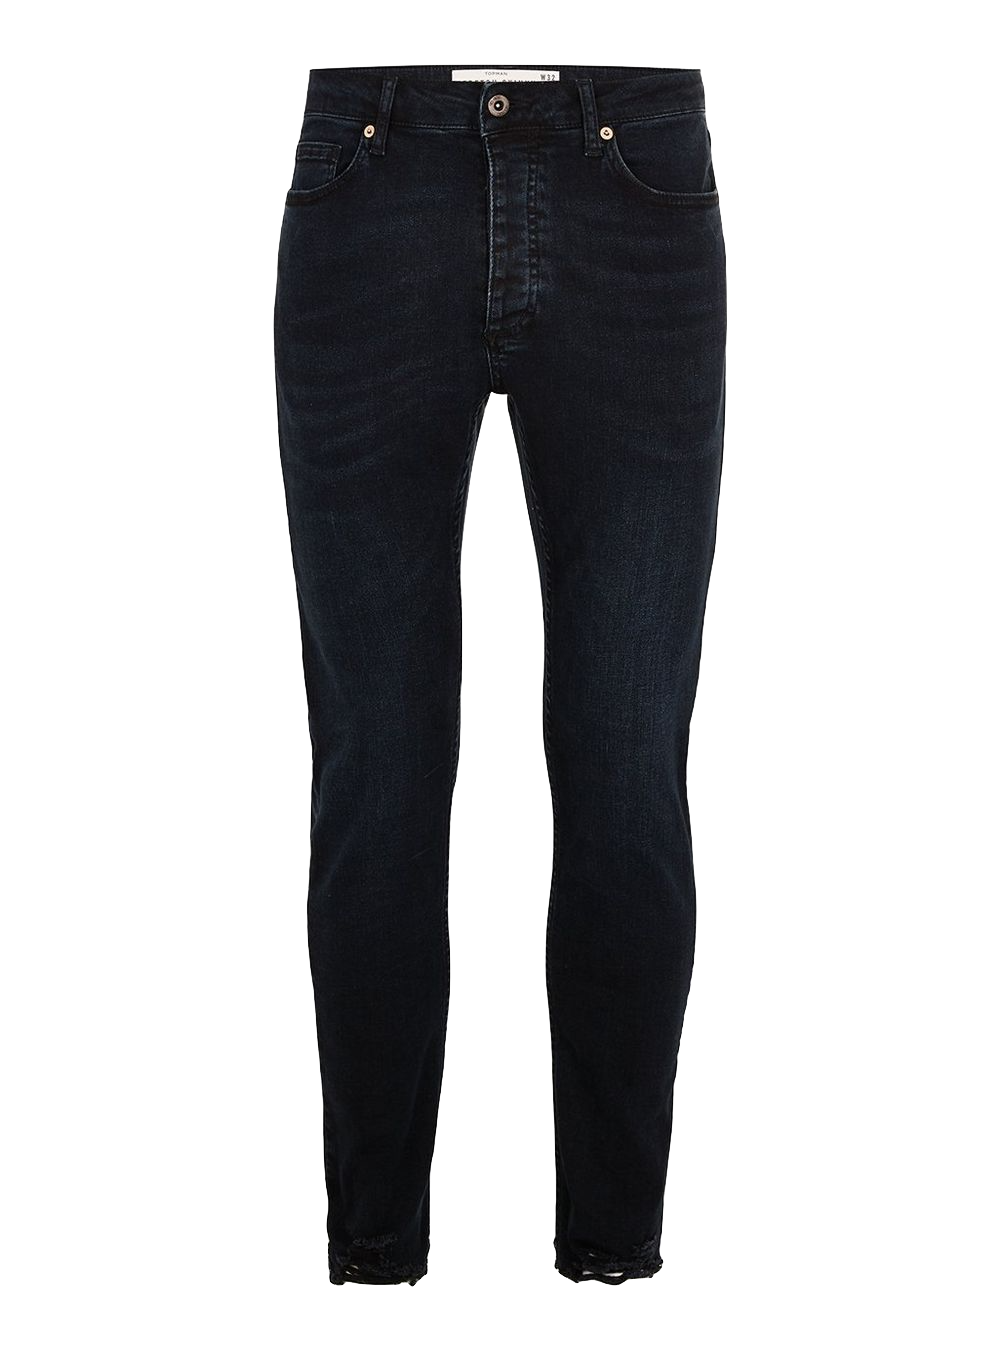 Washed Black Raw Hem Stretch Skinny Jeans